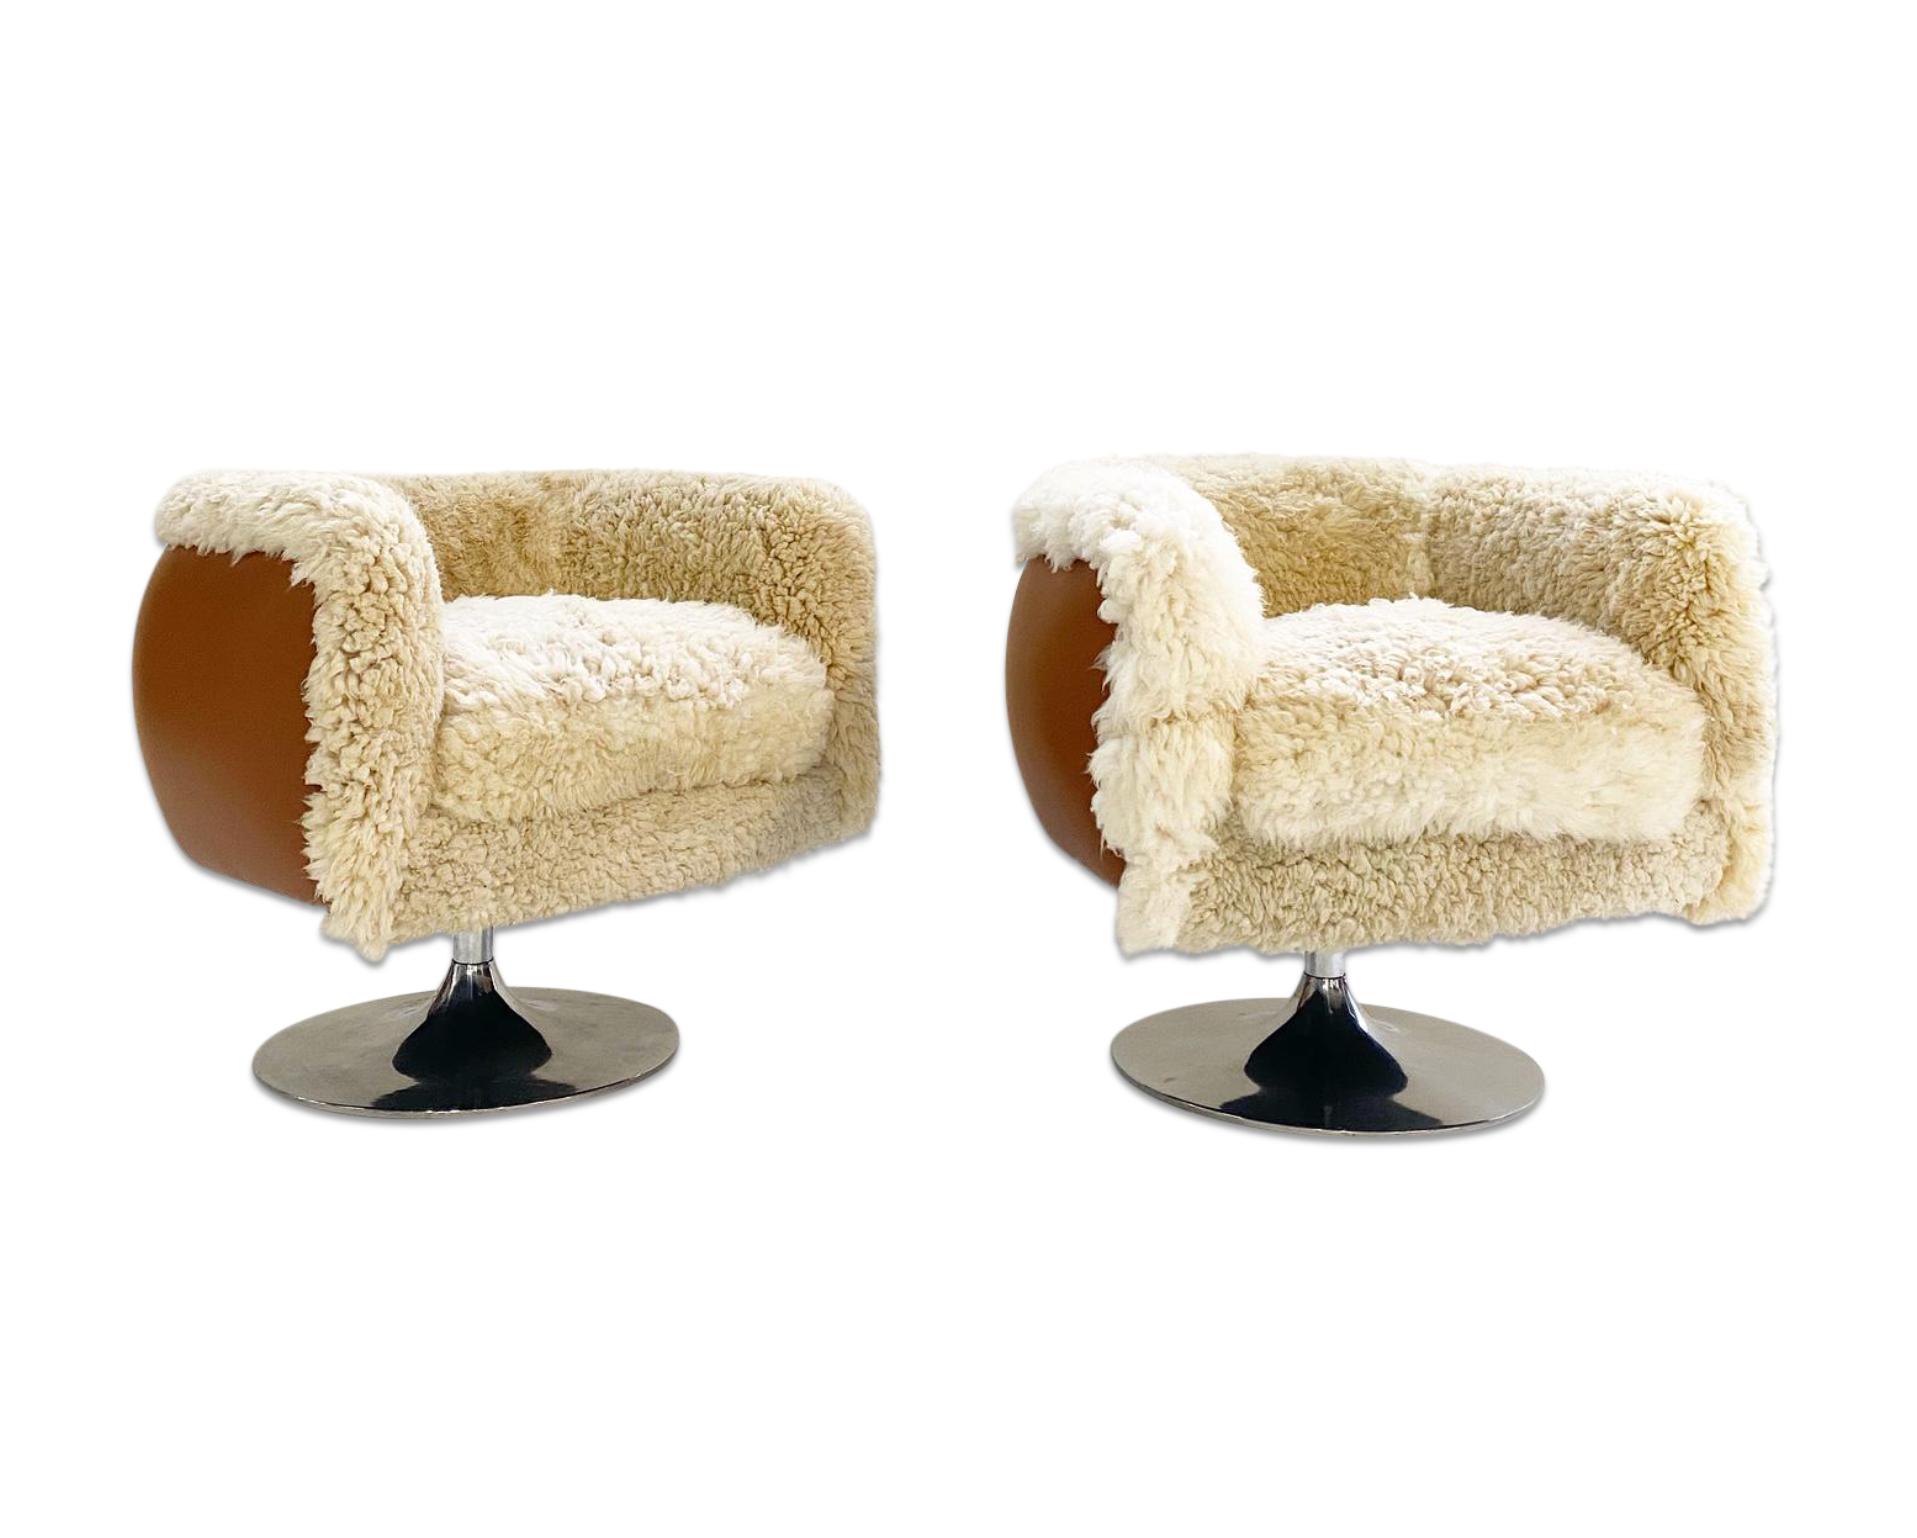 Swivel Lounge Chairs in California Sheepskin and Loro Piana Leather, pair